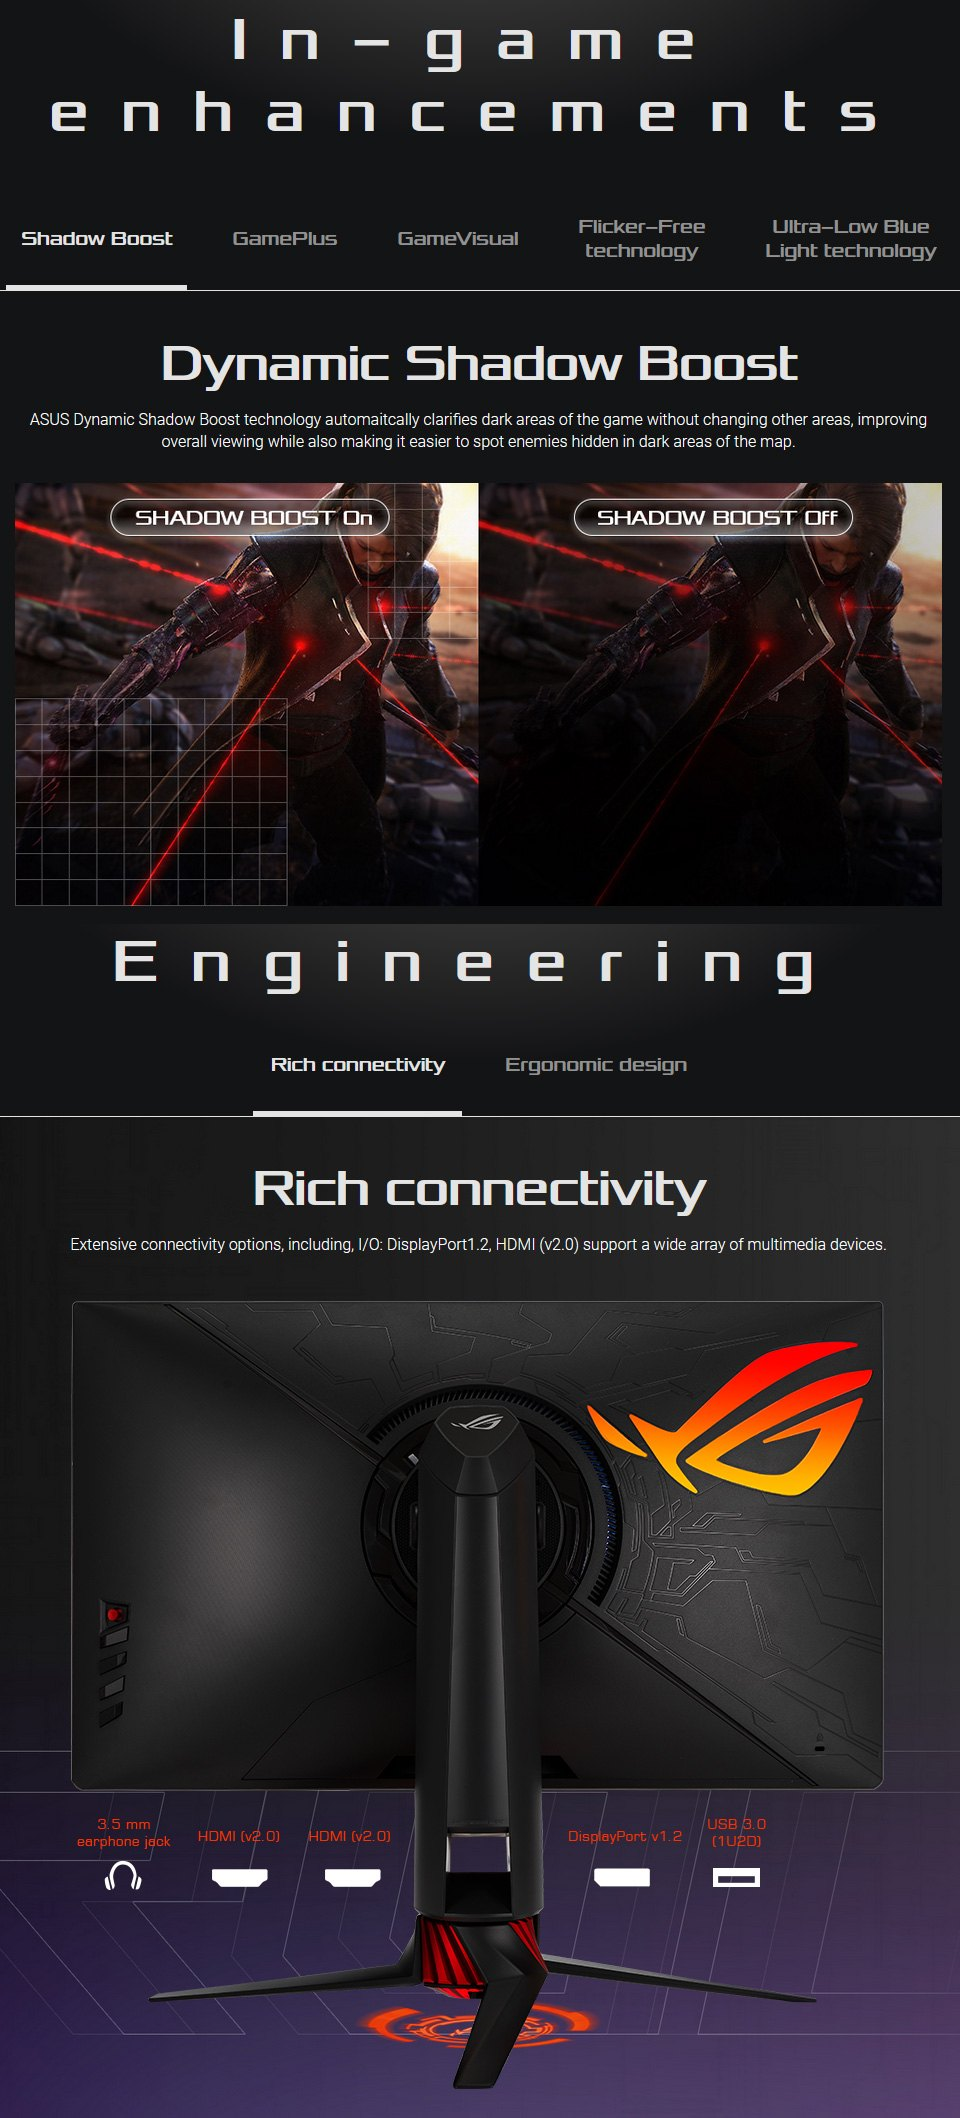 ASUS ROG XG279Q QHD 144hz+ FreeSync HDR 27in Monitor features 3